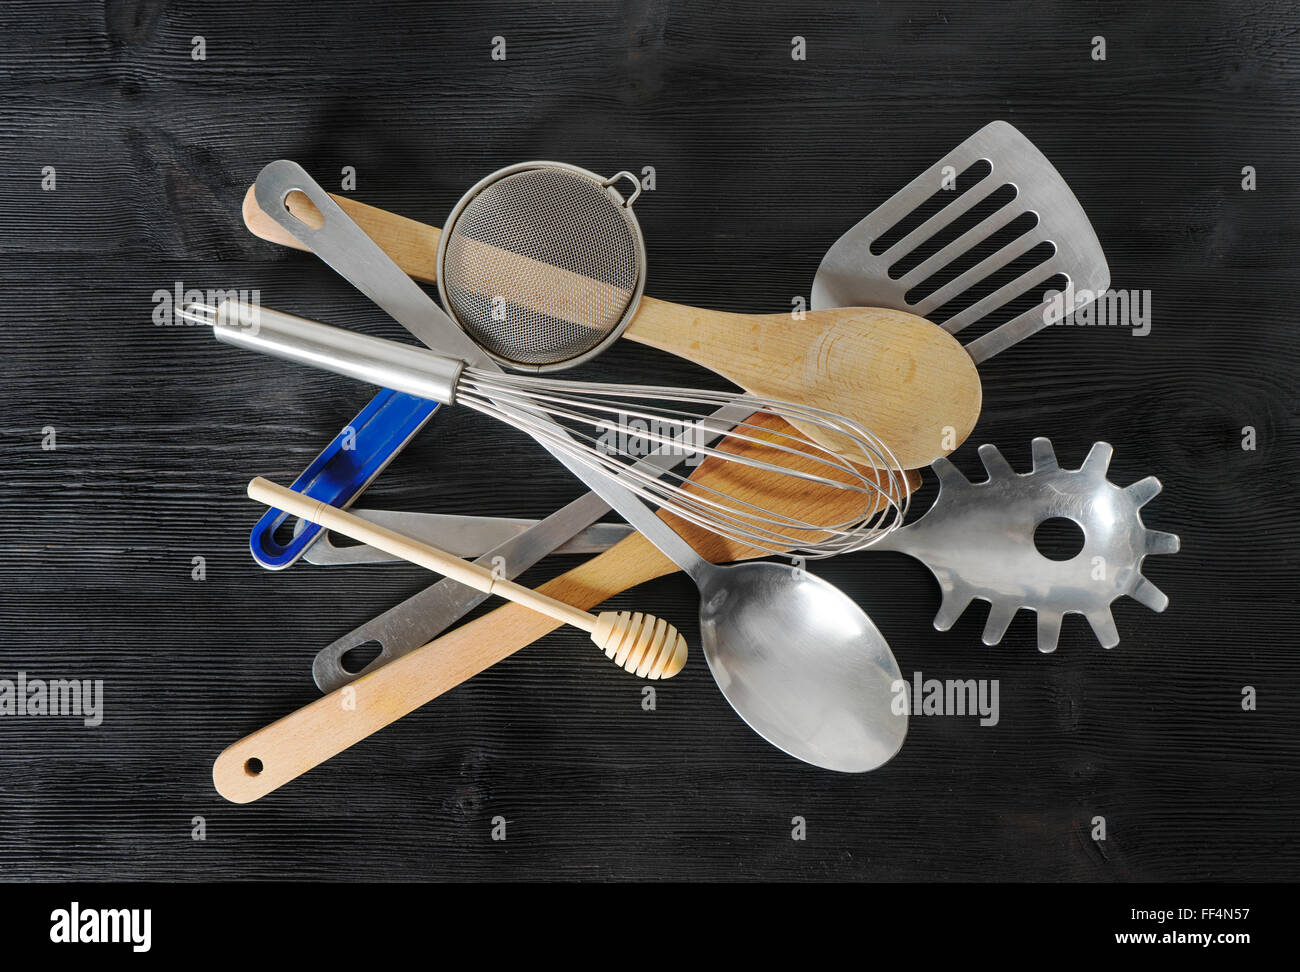 Set  of kitchen utensils on black background - Stock Image